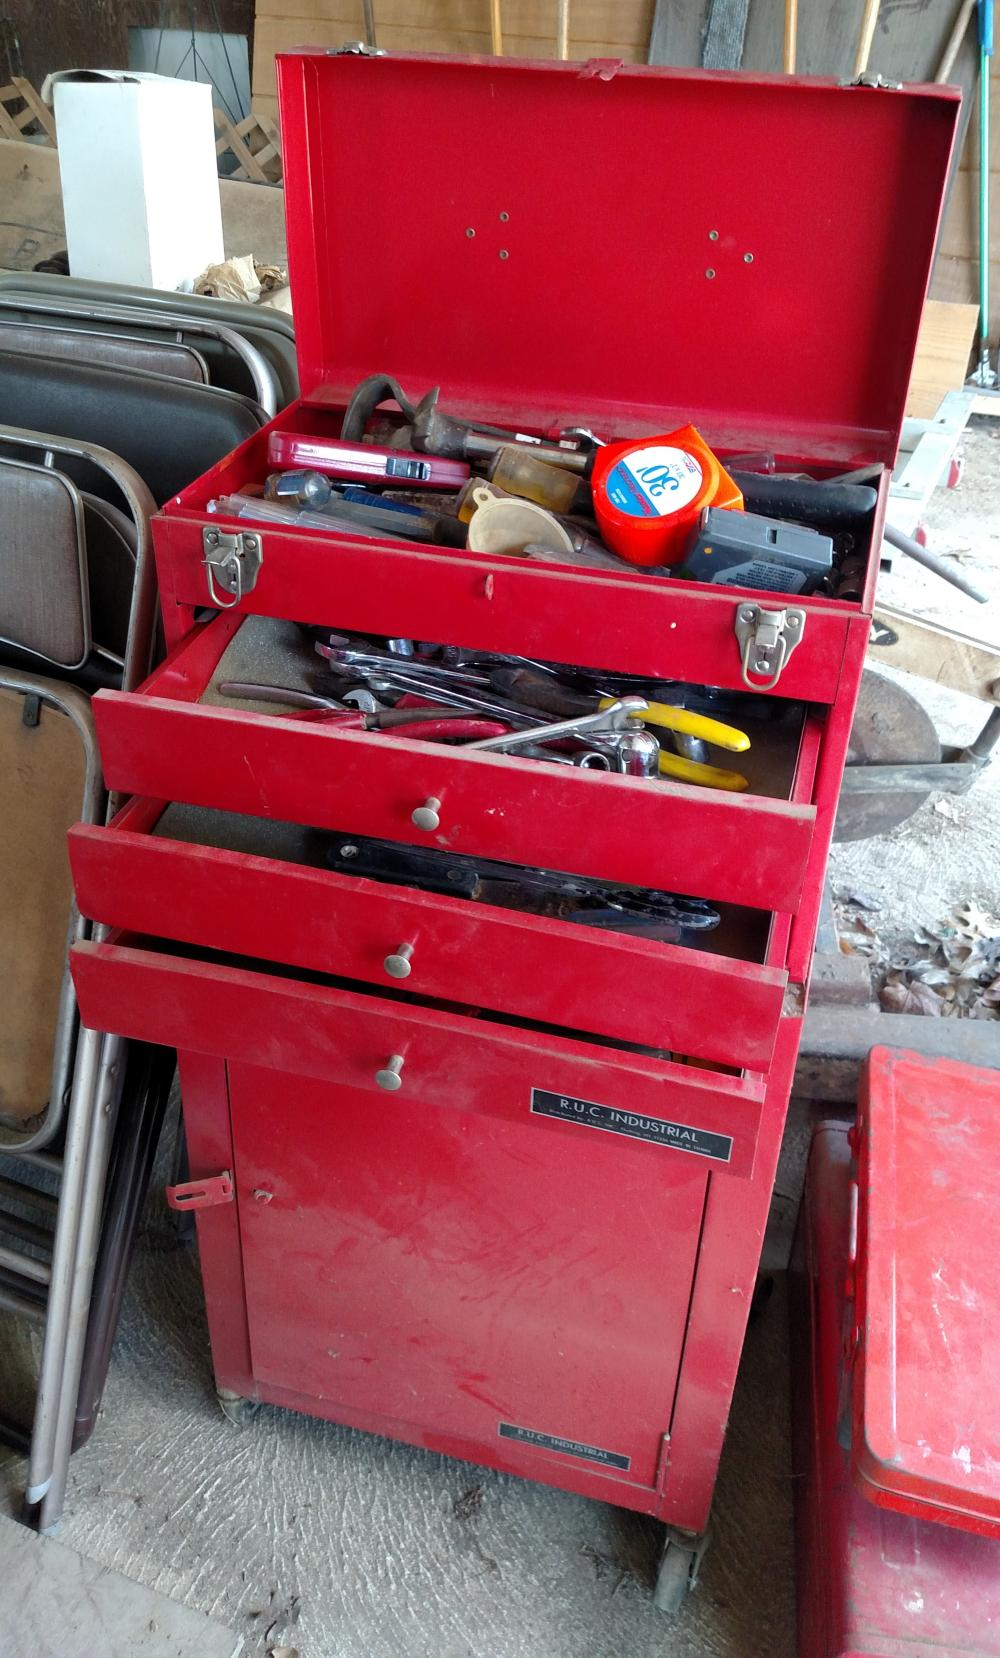 """red R.U.C. metal tool box w/ tools (hammers, chisels, wrenches, pliers, allen wrenches) 39"""" tall, 18"""" wide, 11"""" deep"""